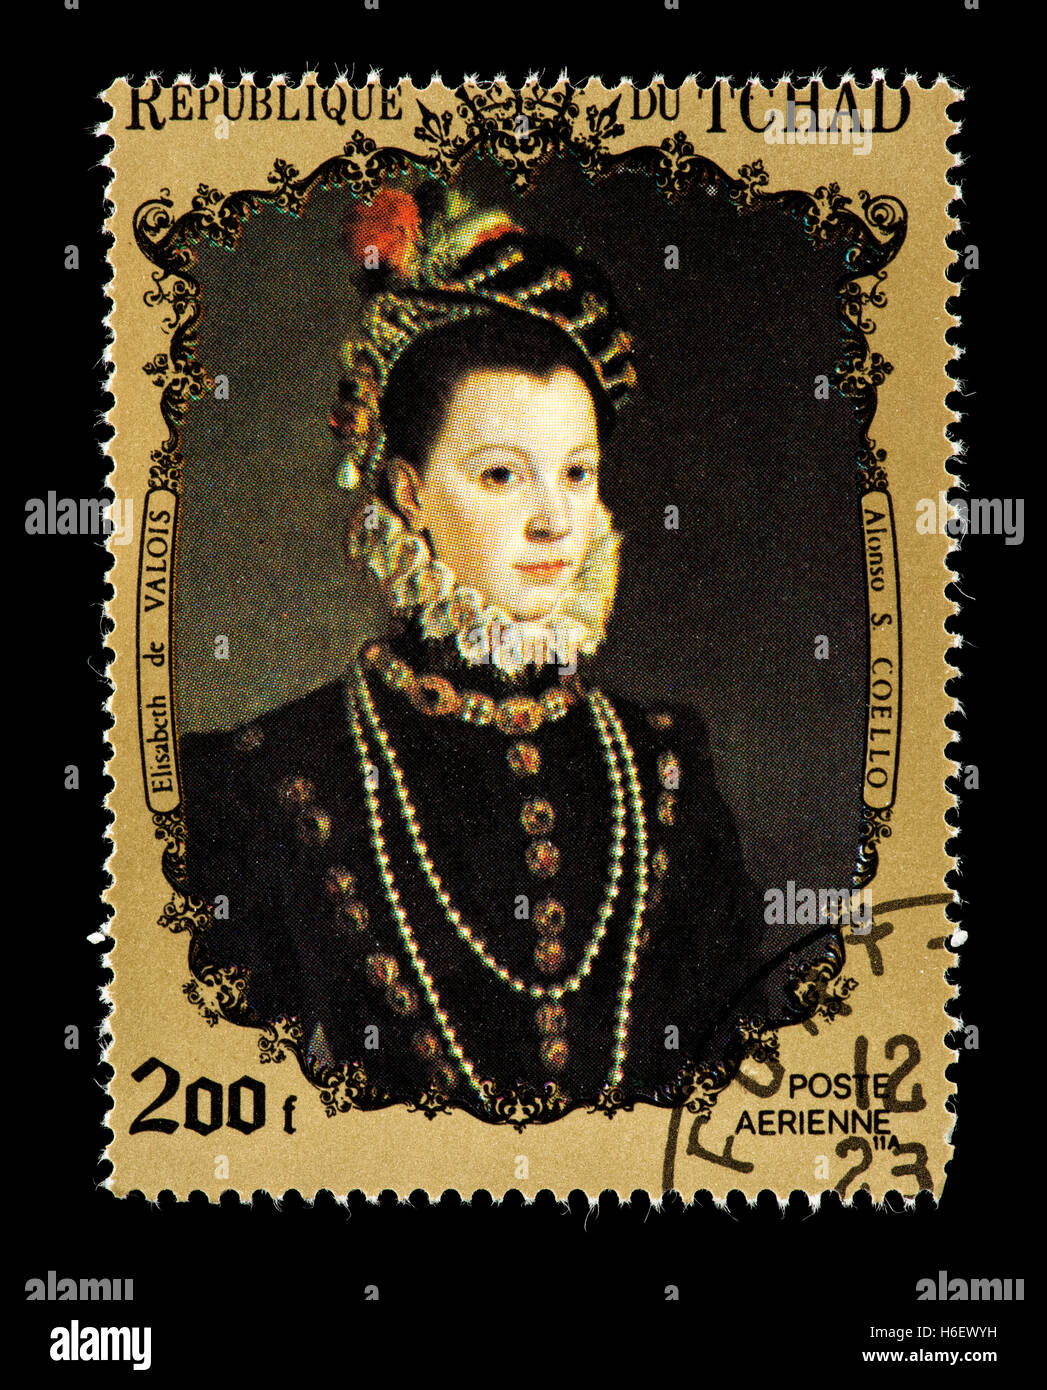 Postage stamp from Chad depicting the Coello painting of Elizabeth of Valois. - Stock Image